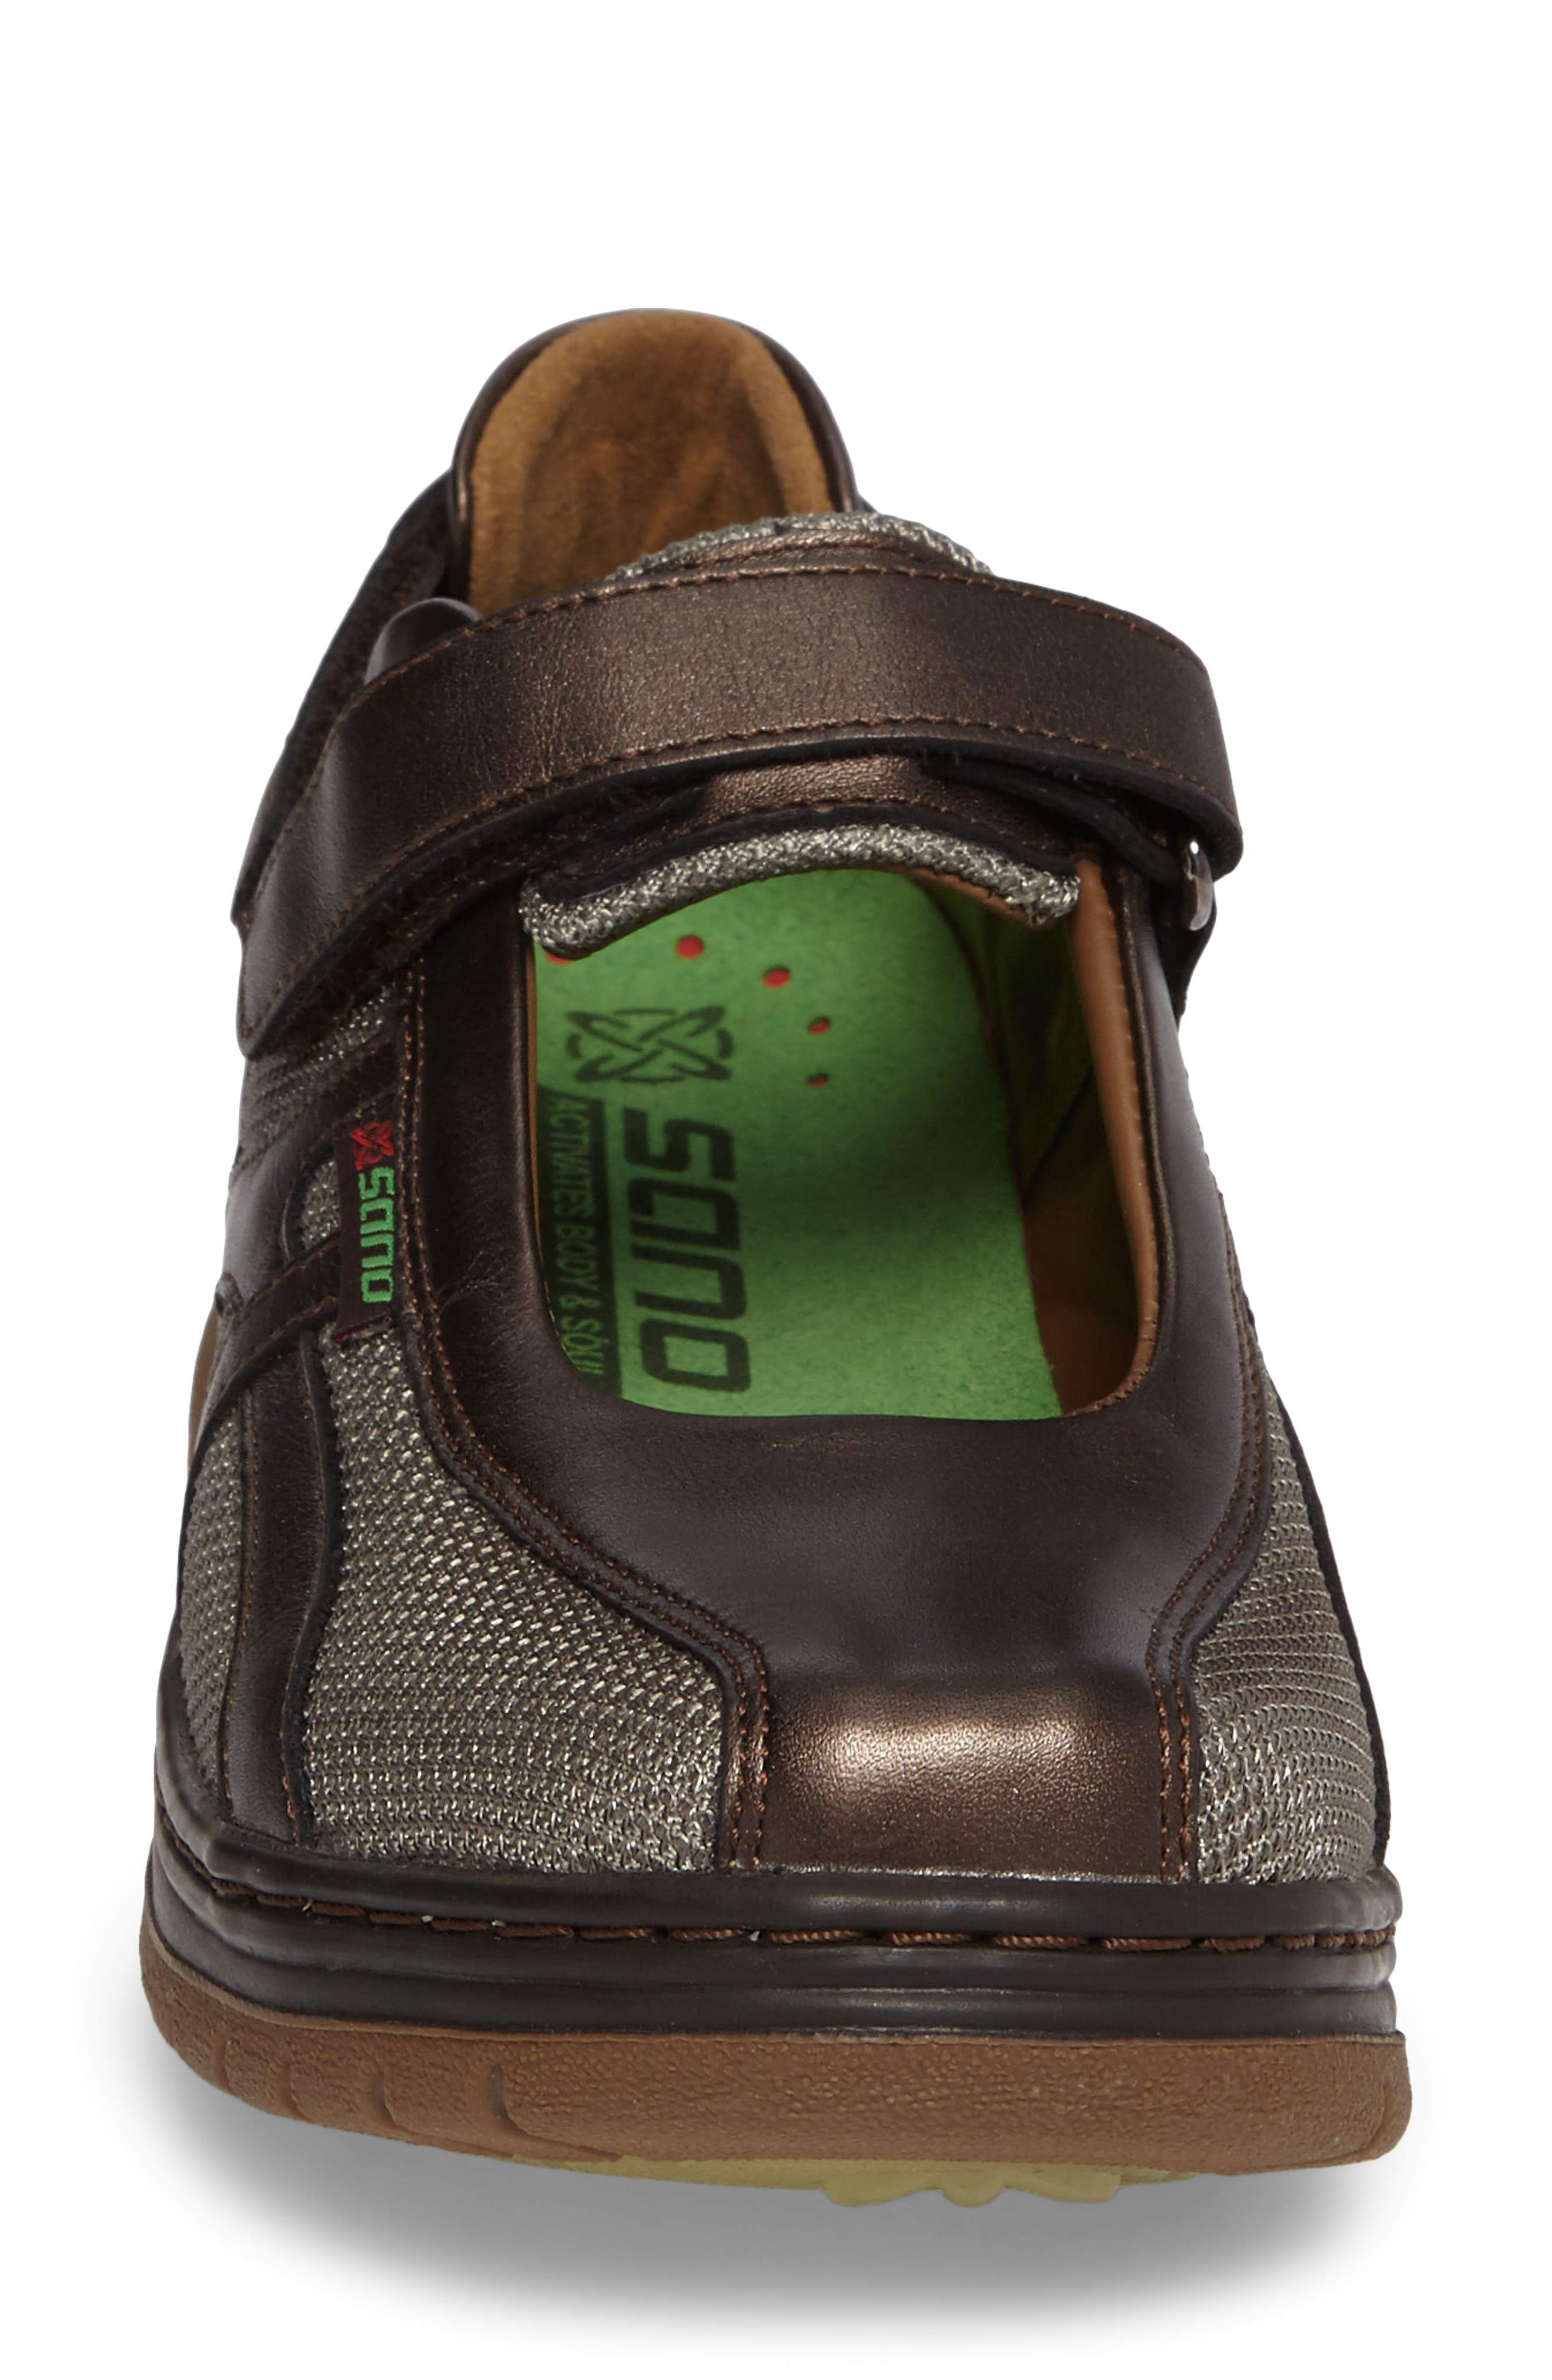 Sano by Mephisto 'Excess' Walking Shoe,                             Alternate thumbnail 13, color,